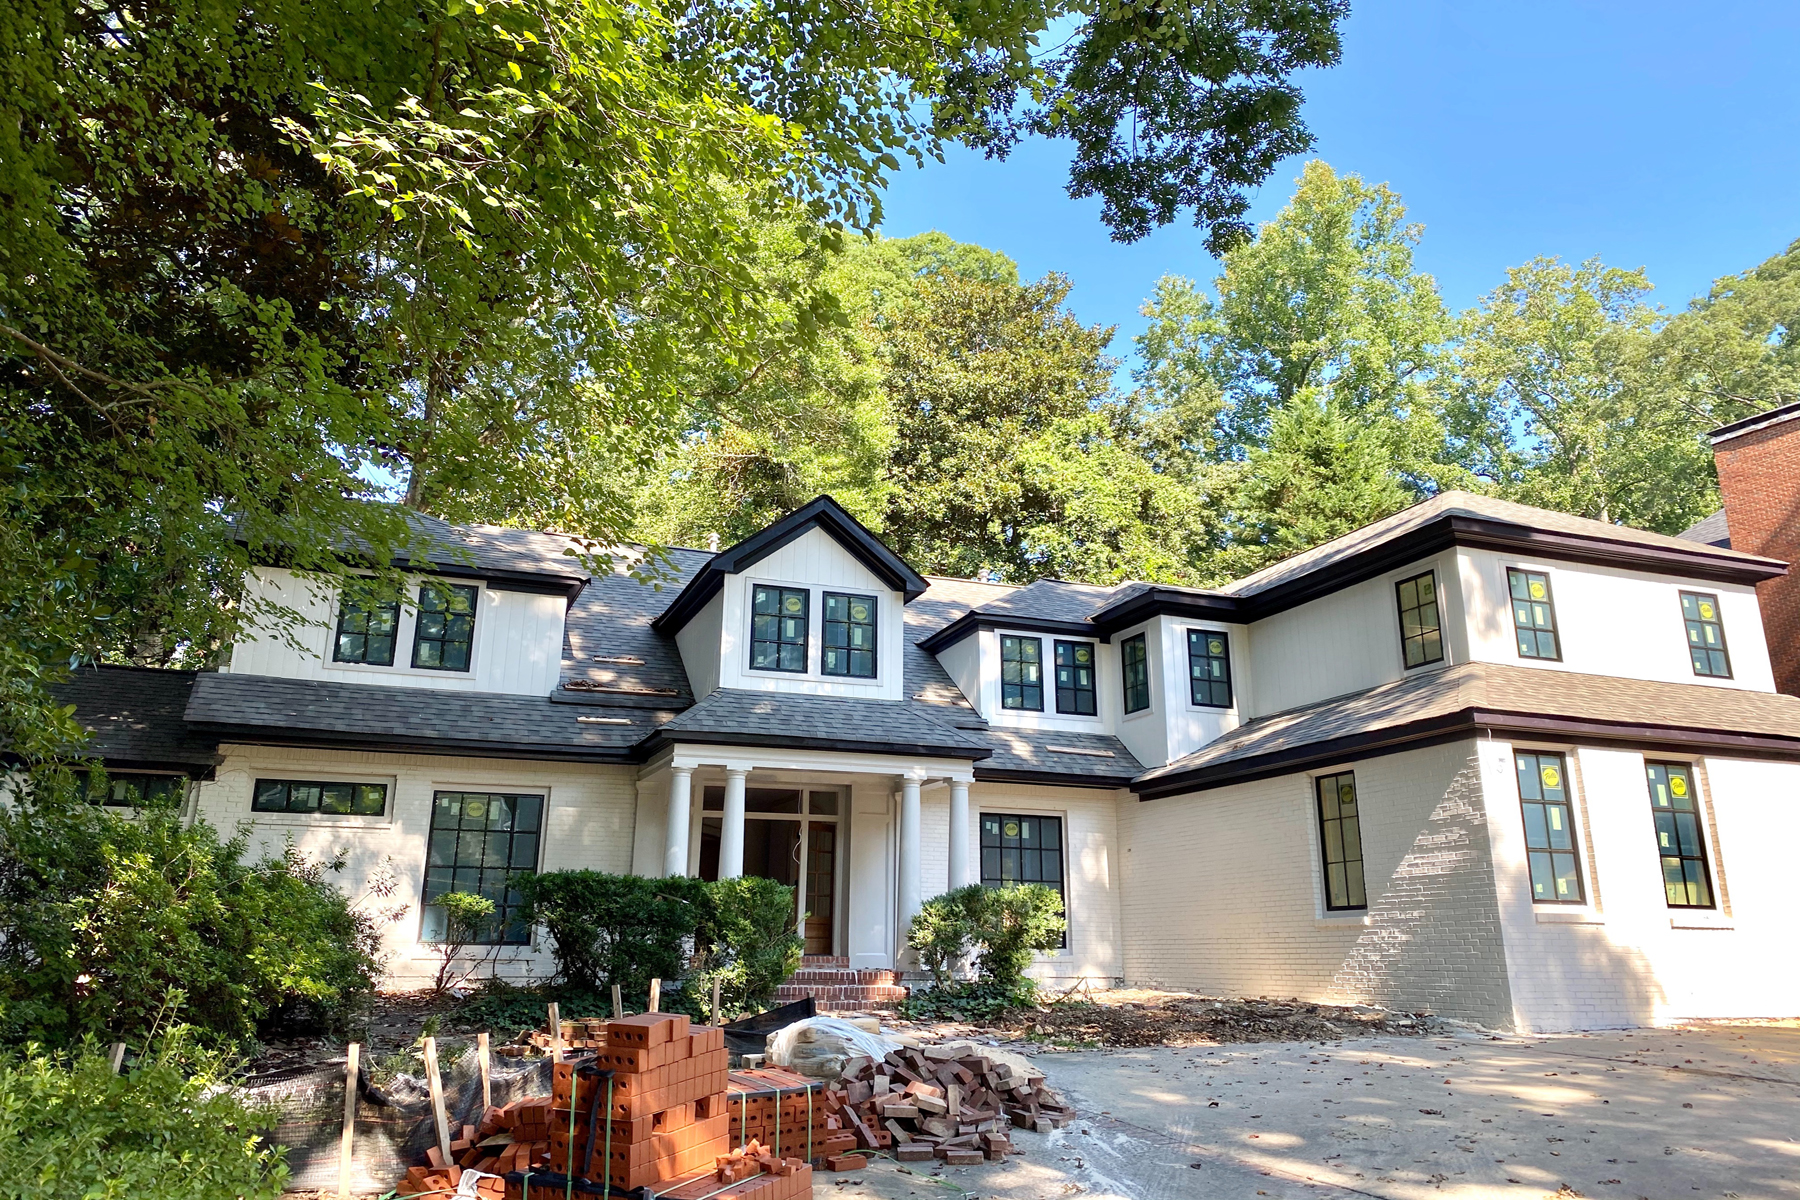 Property for Sale at Renovated Traditional Home in Buckhead 3230 W Andrews Drive NW Atlanta, Georgia 30305 United States